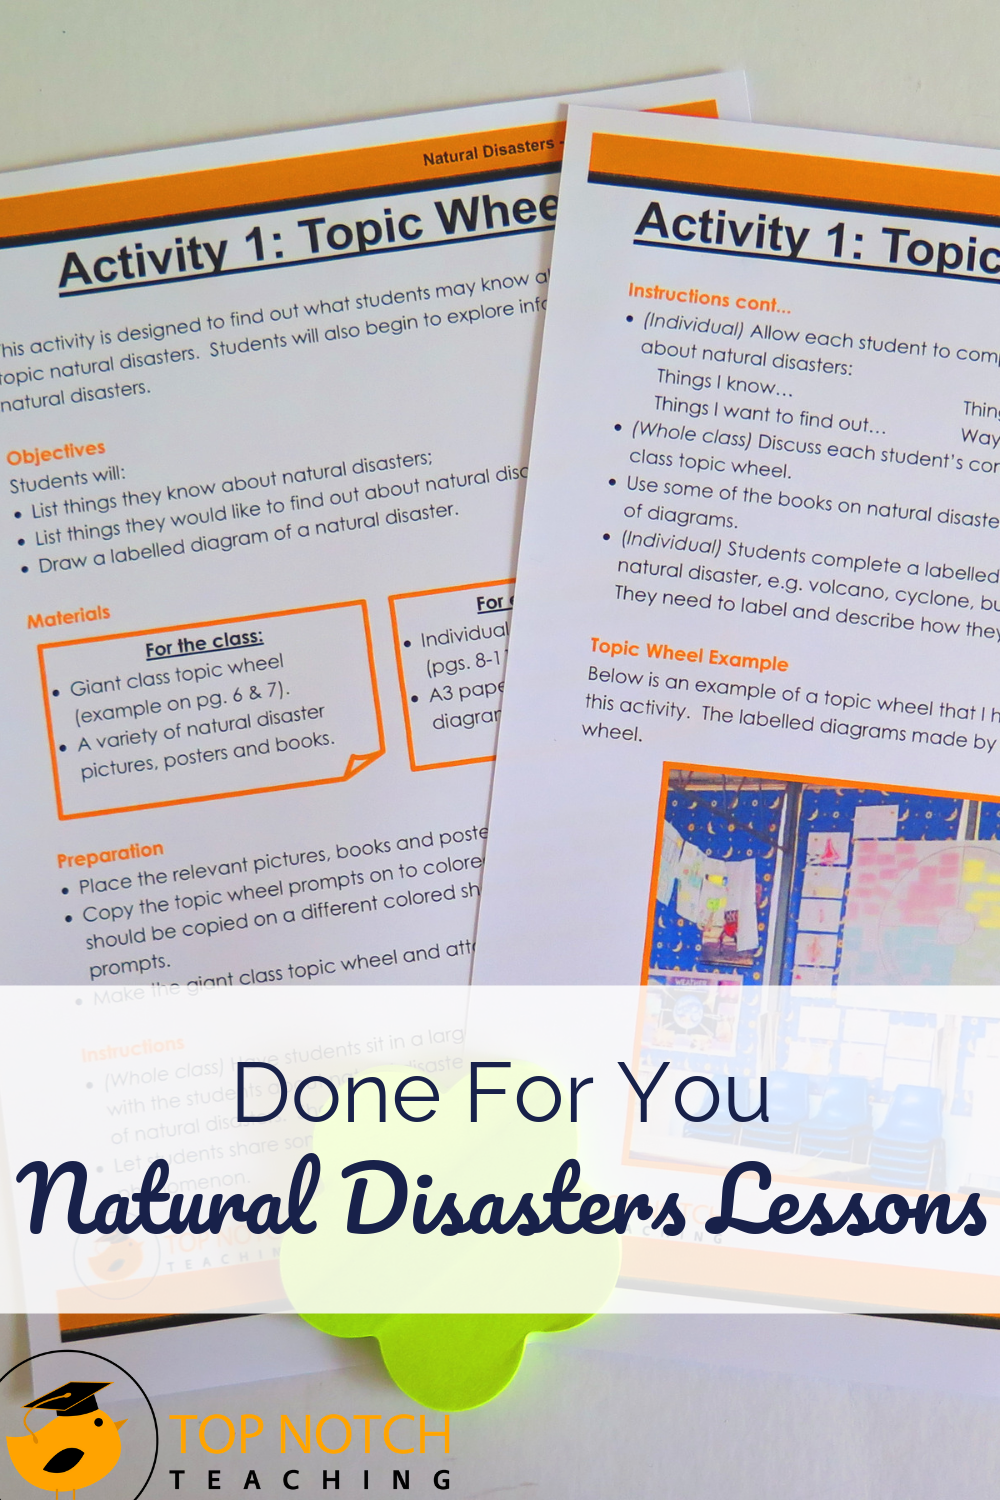 Natural Disasters Report Writing Natural Disasters Activities Natural Disasters For Kids Natural Disasters Lessons [ 1500 x 1000 Pixel ]